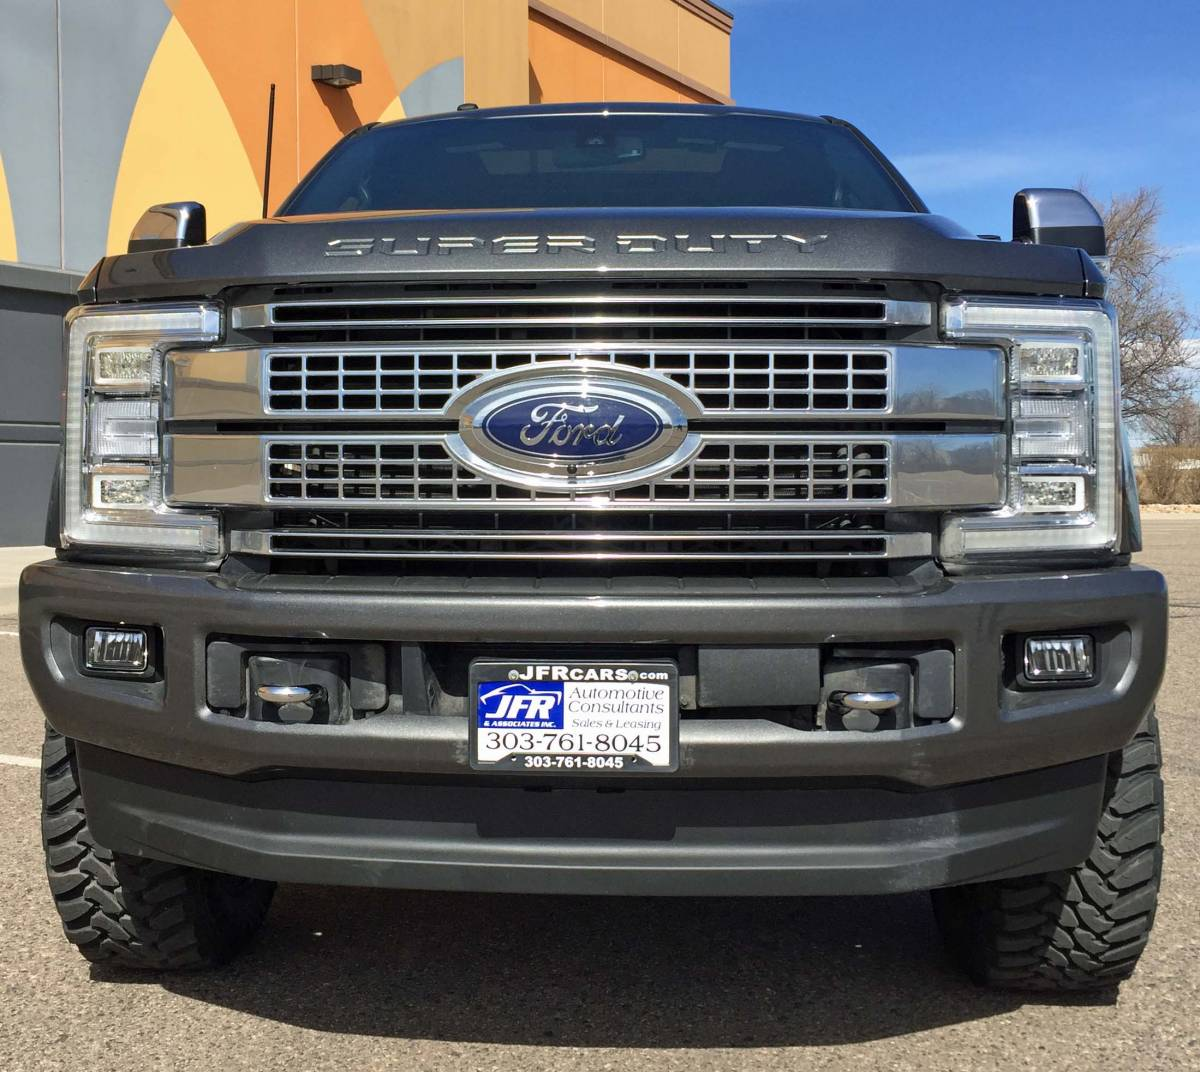 hight resolution of 2017 ford f350 super duty readylift leveling kit wth fuel offroad wheels on toyo m t tires build 79447